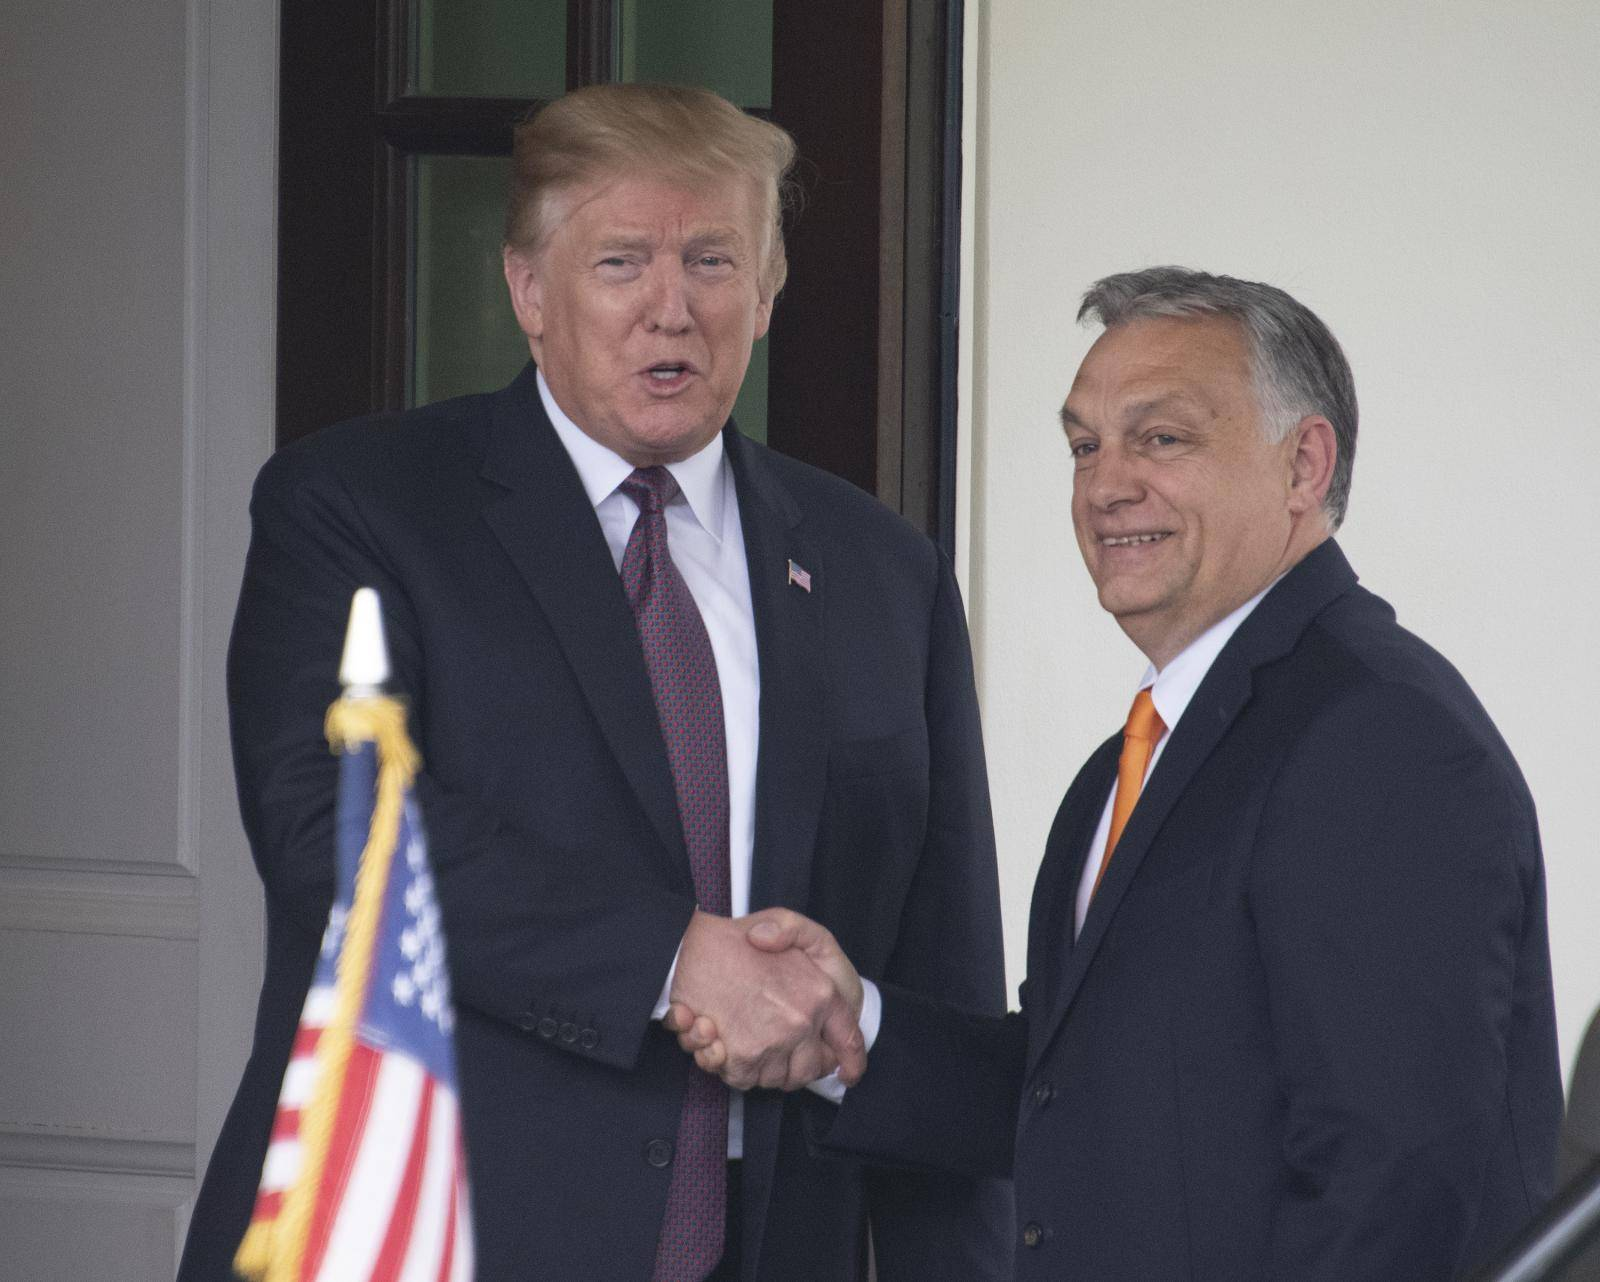 President Donald J. Trump Welcomes Orban of Hungary